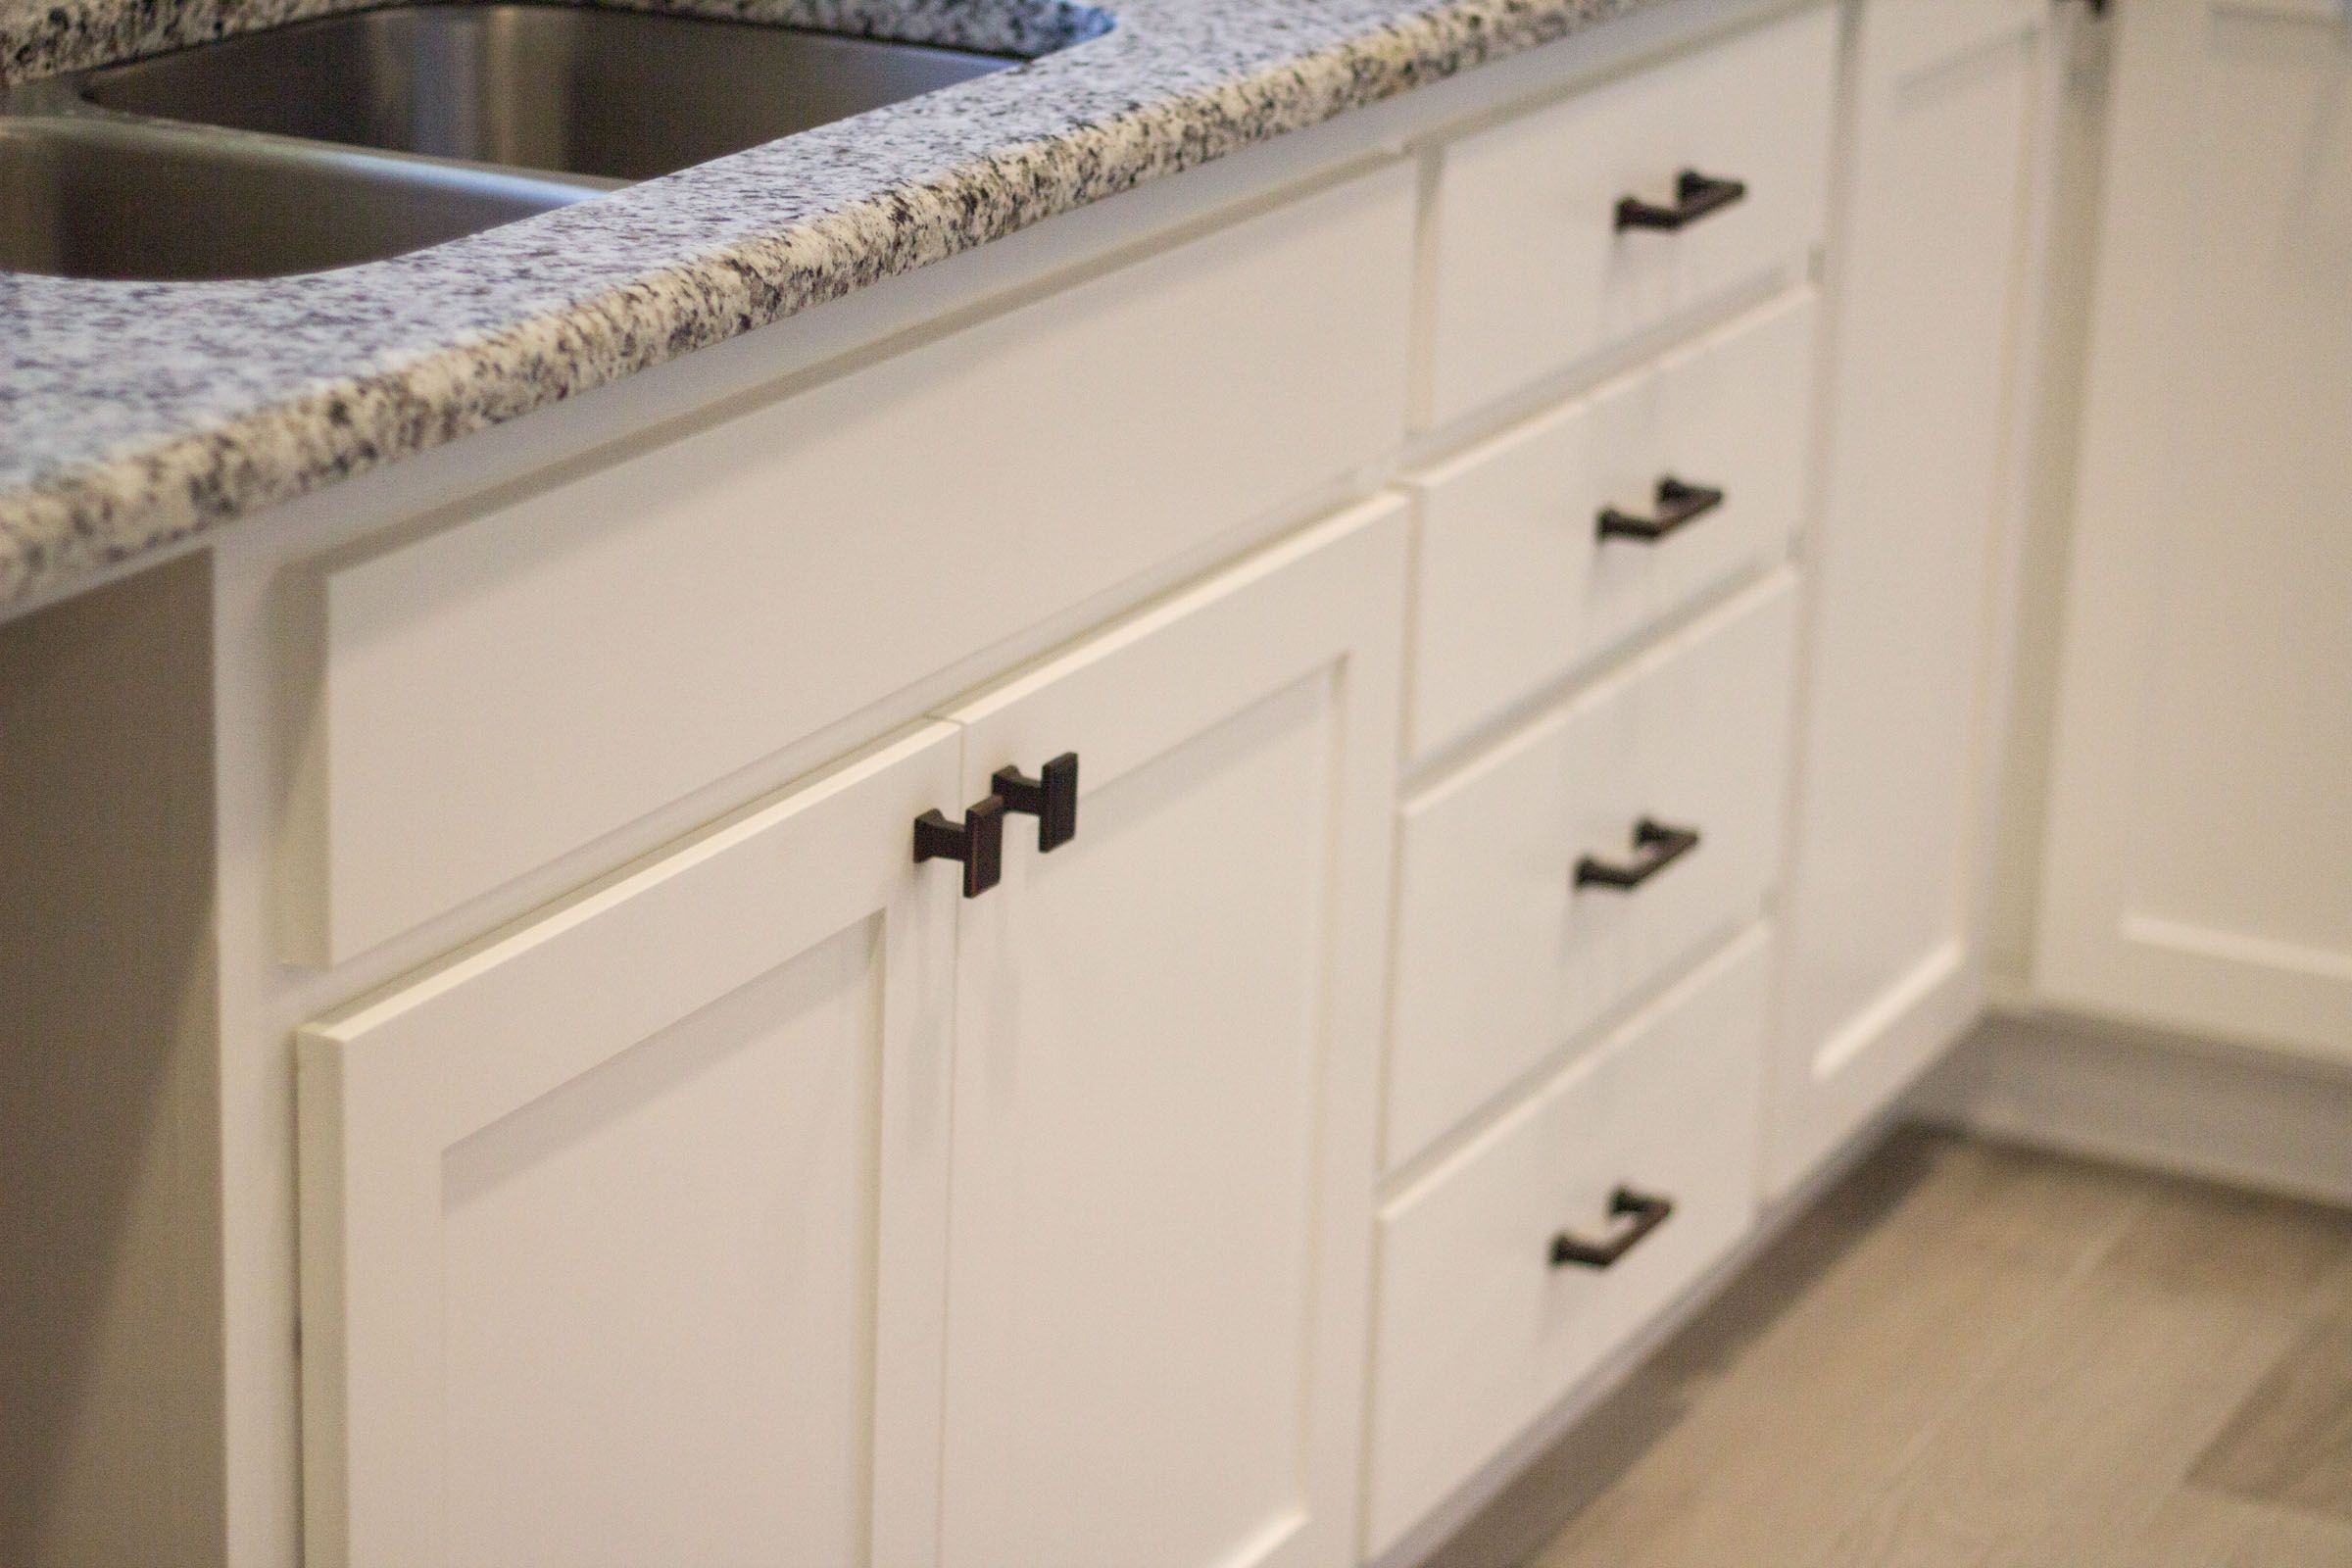 A Detail Shot Of The Slick White Shaker Style Cabinets Quartz Counter Tops And Stainless Steel Appliances Kit Shaker Style Cabinets Kitchen Kitchen Remodel